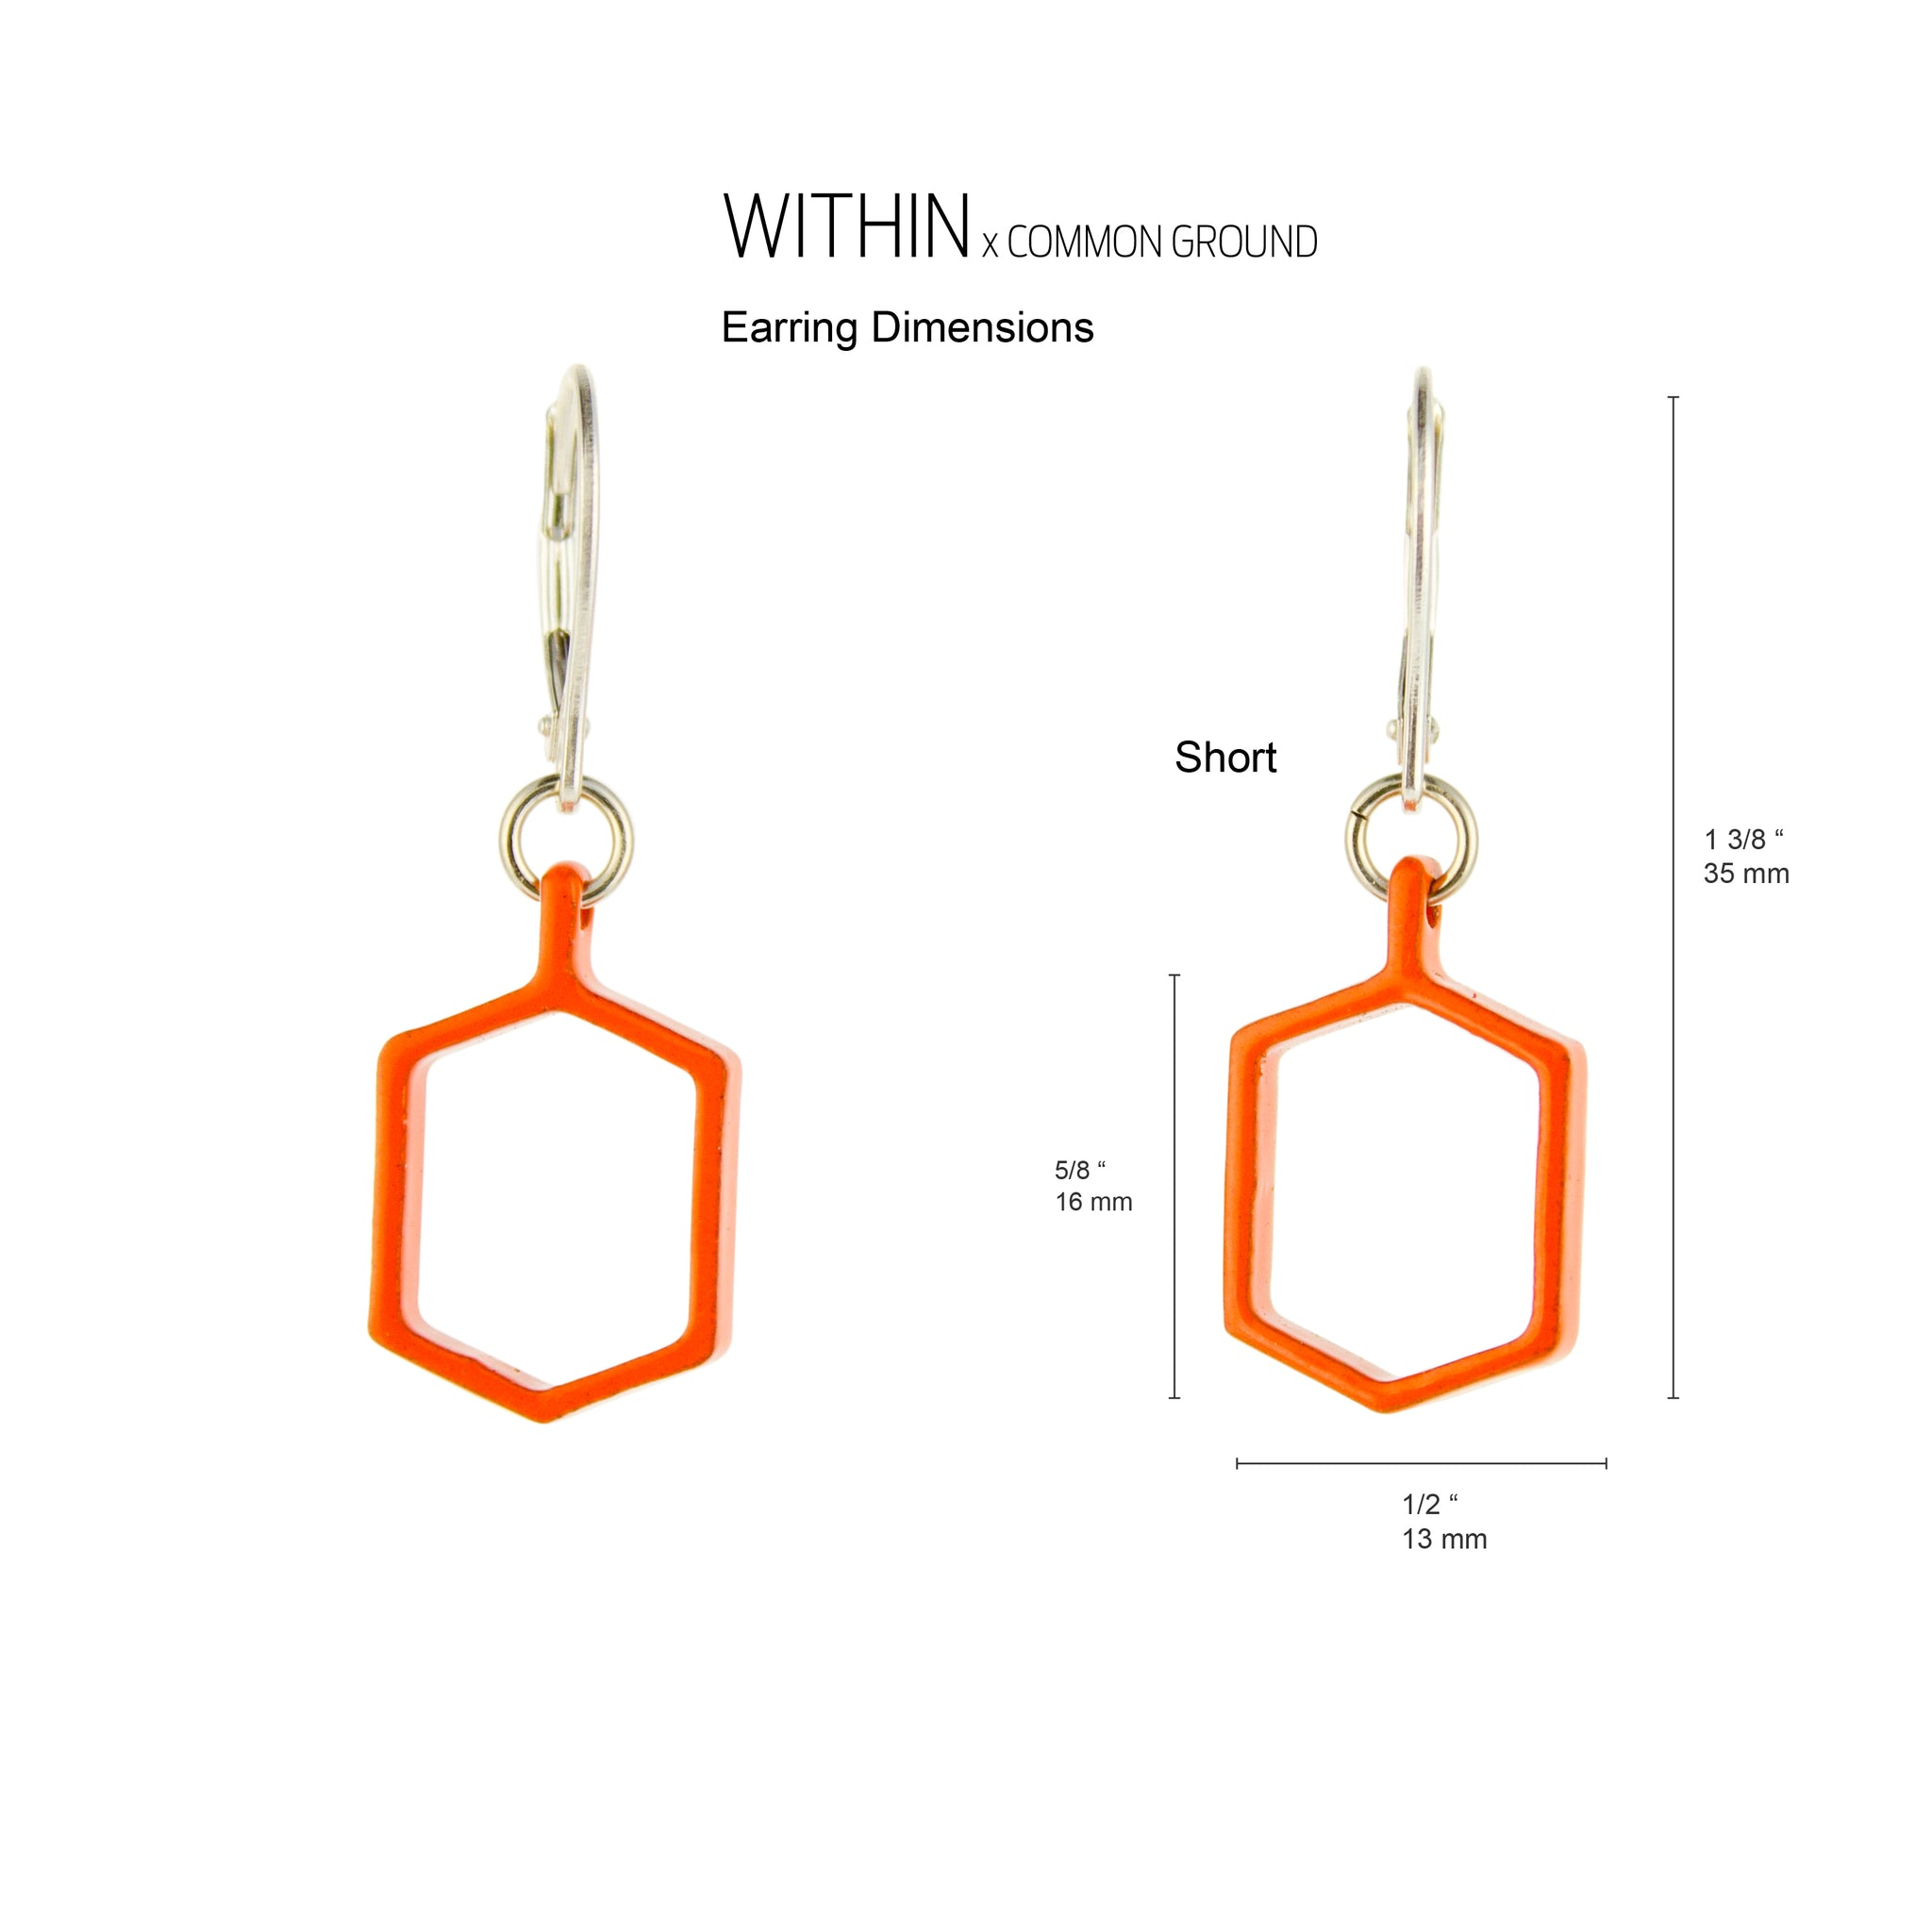 Vibrant_Orange - WITHIN x COMMON GROUND Earring Dim View